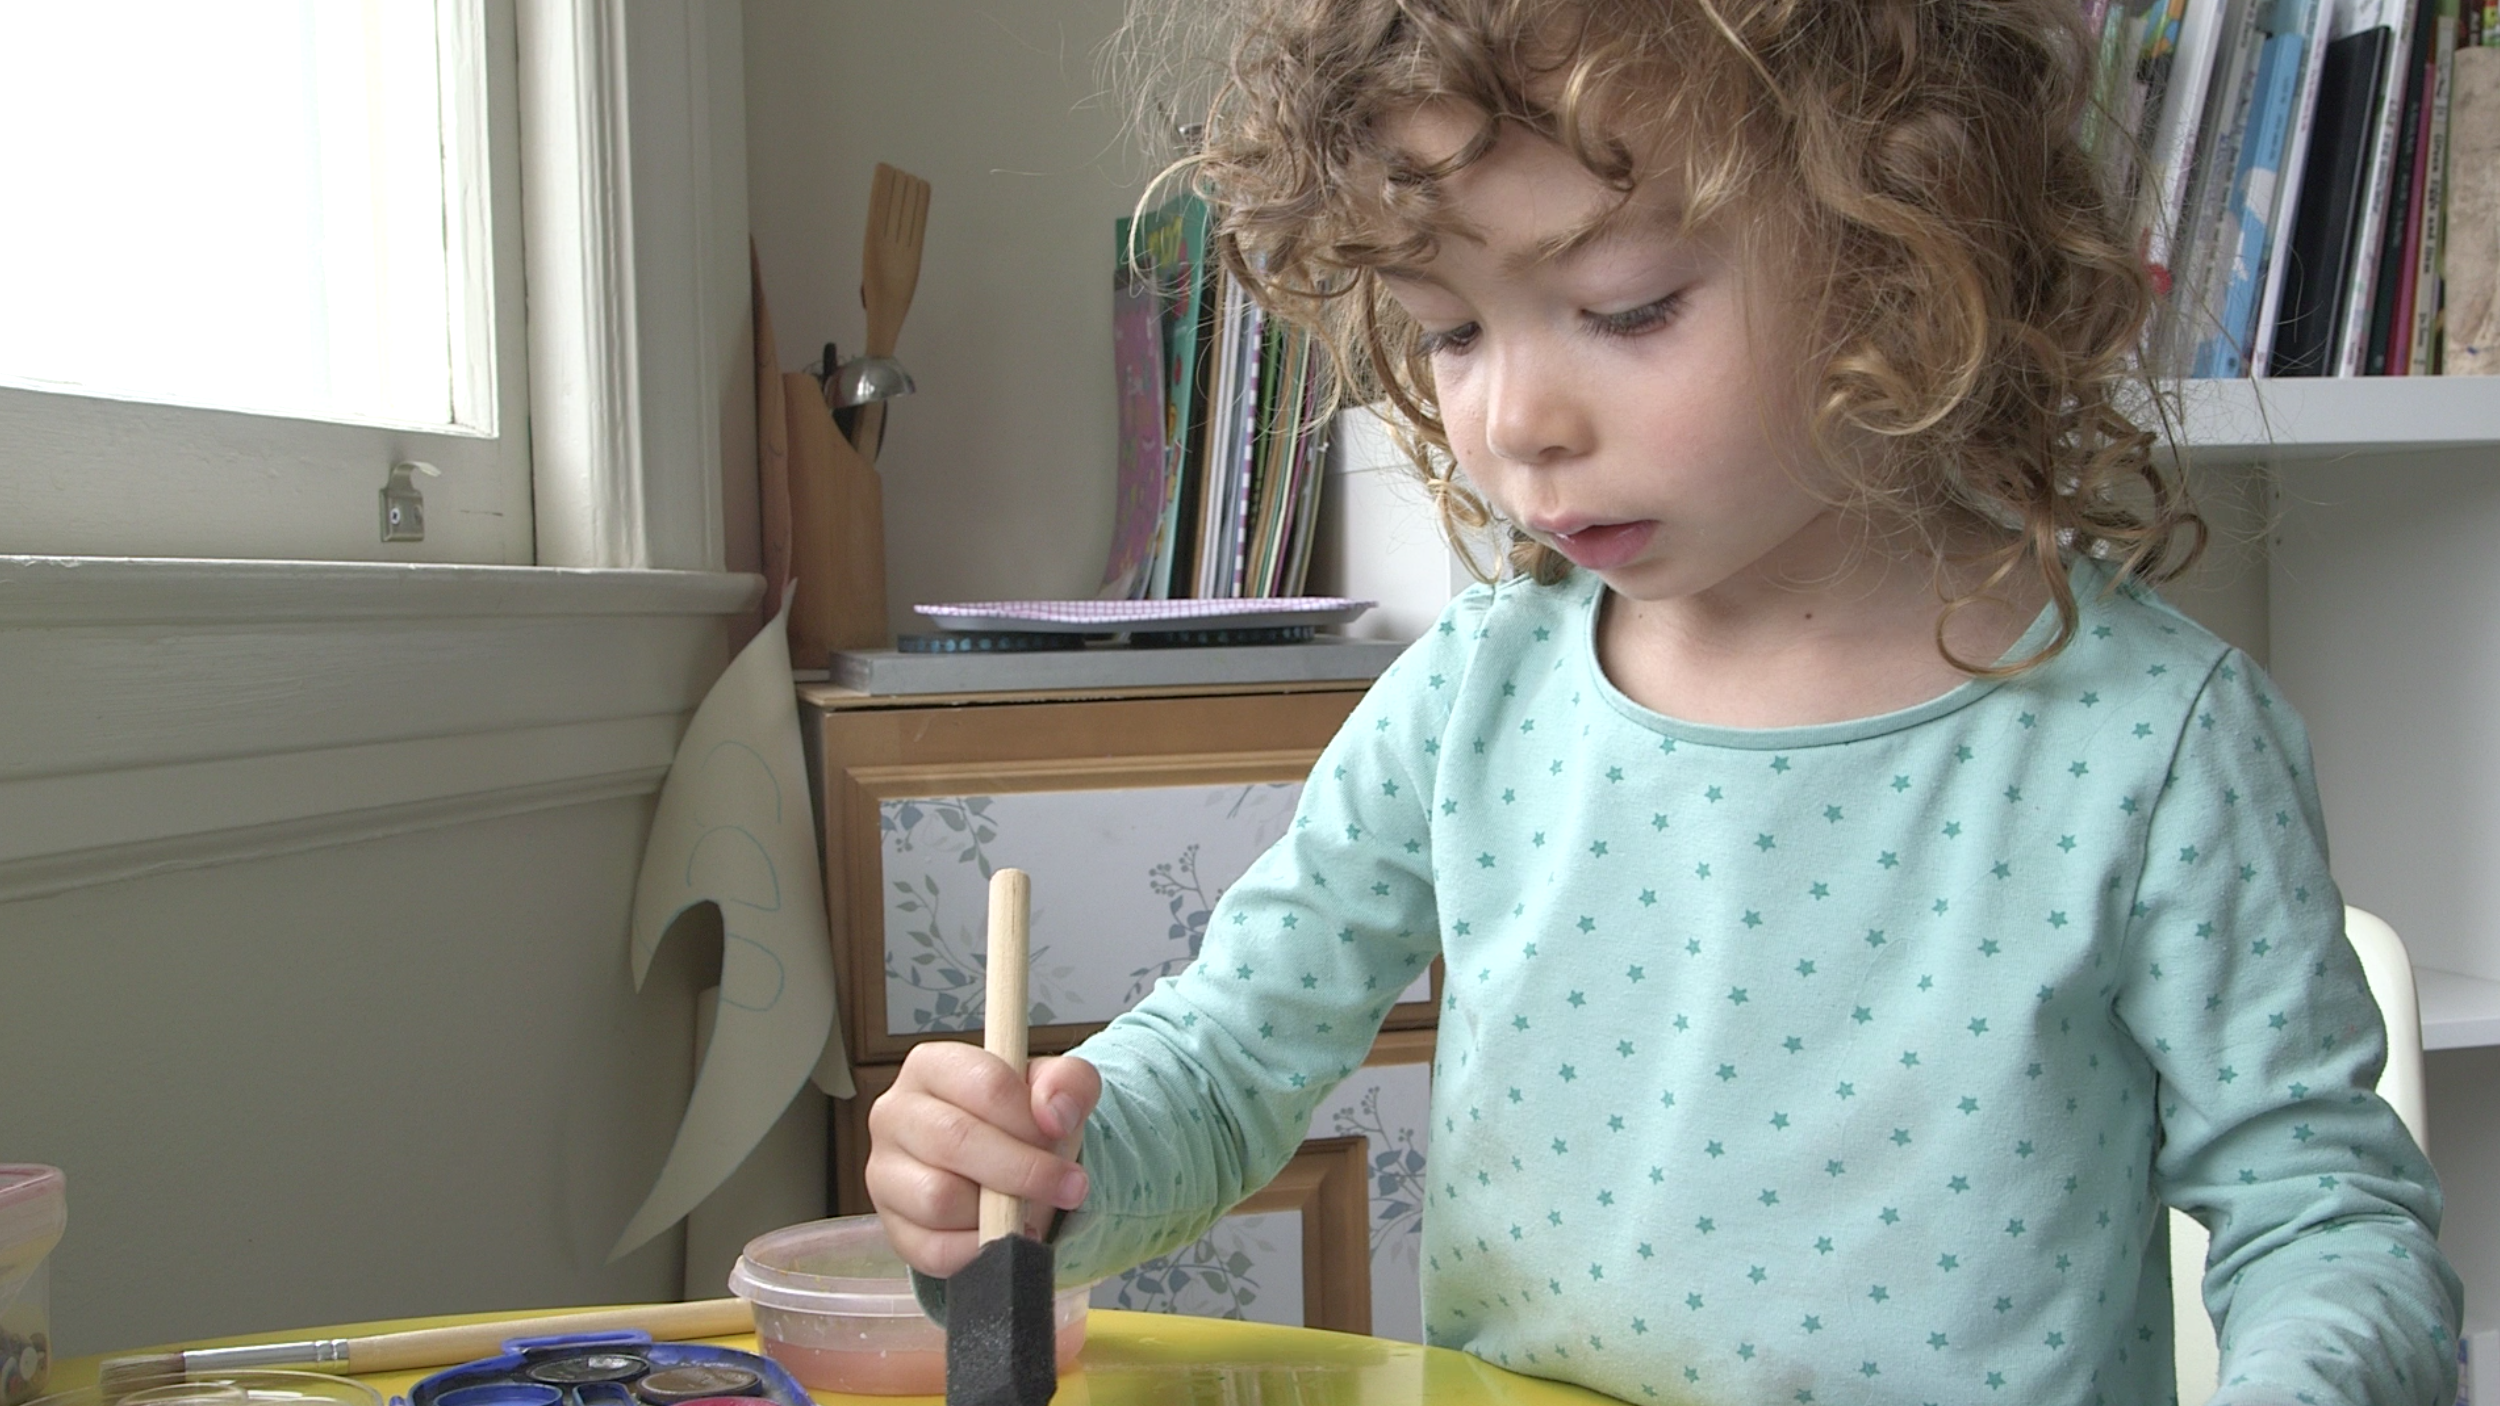 Child painting at a table